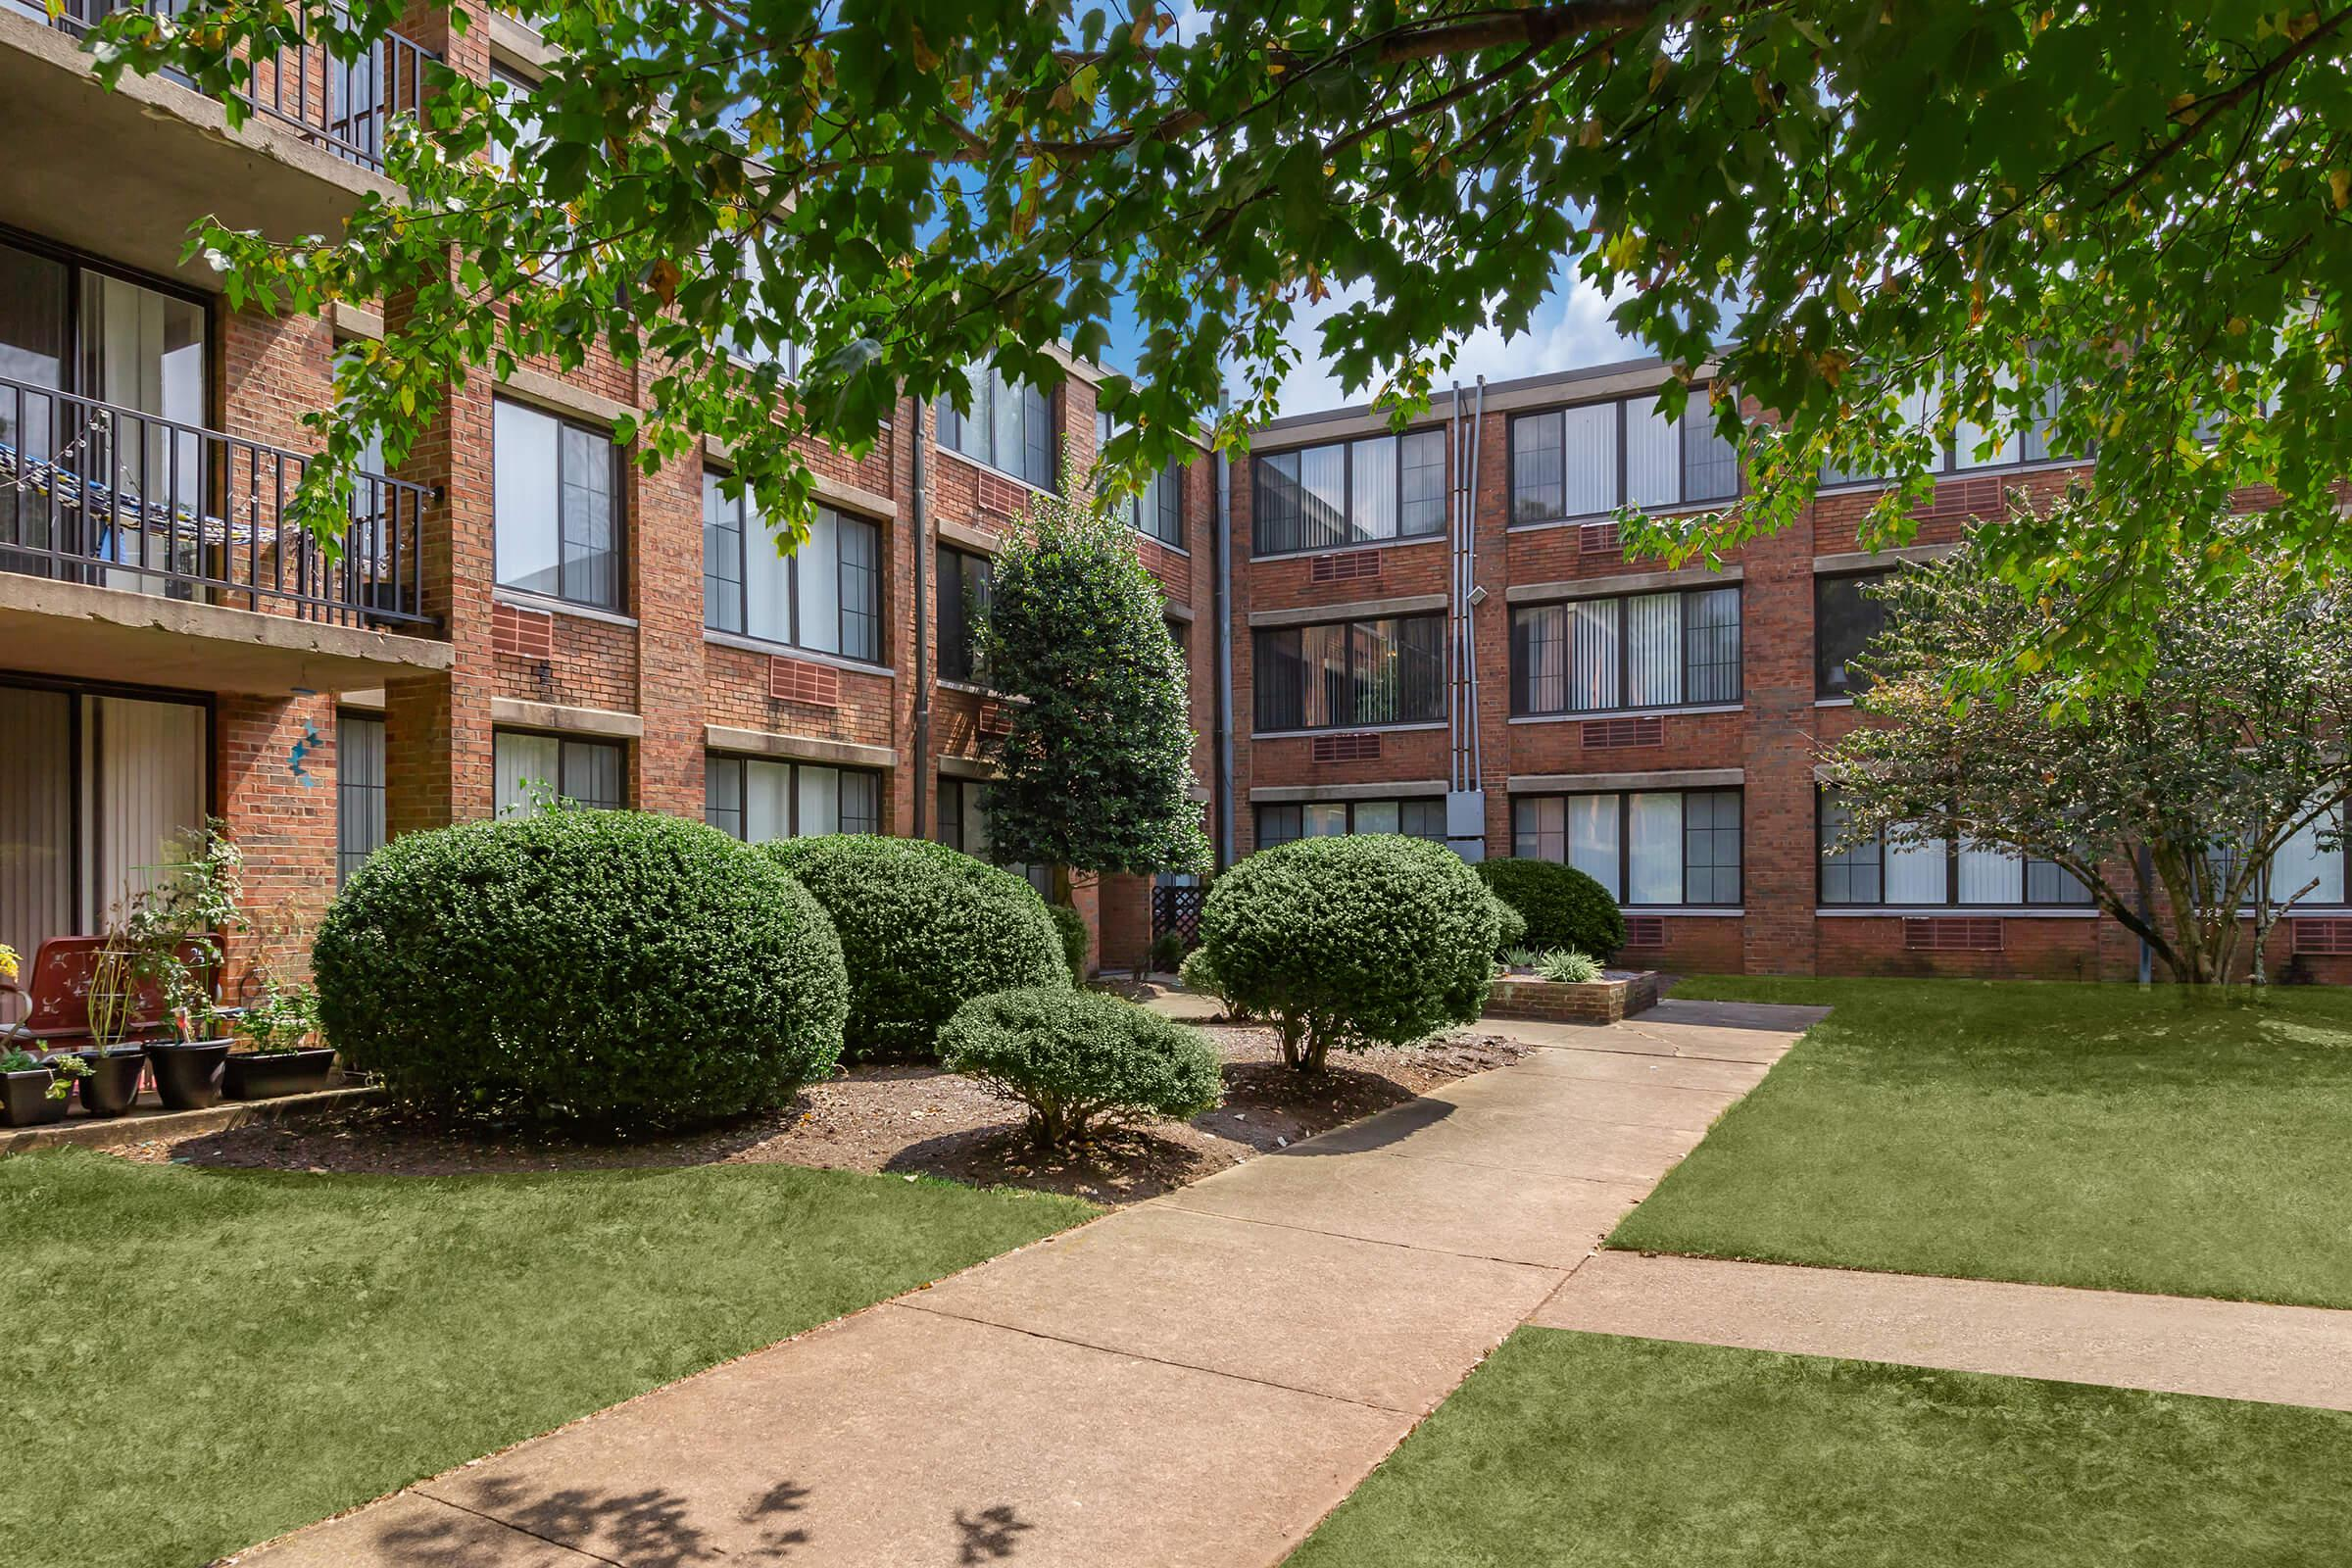 STUDIO APARTMENTS FOR RENT IN KNOXVILLE, TN